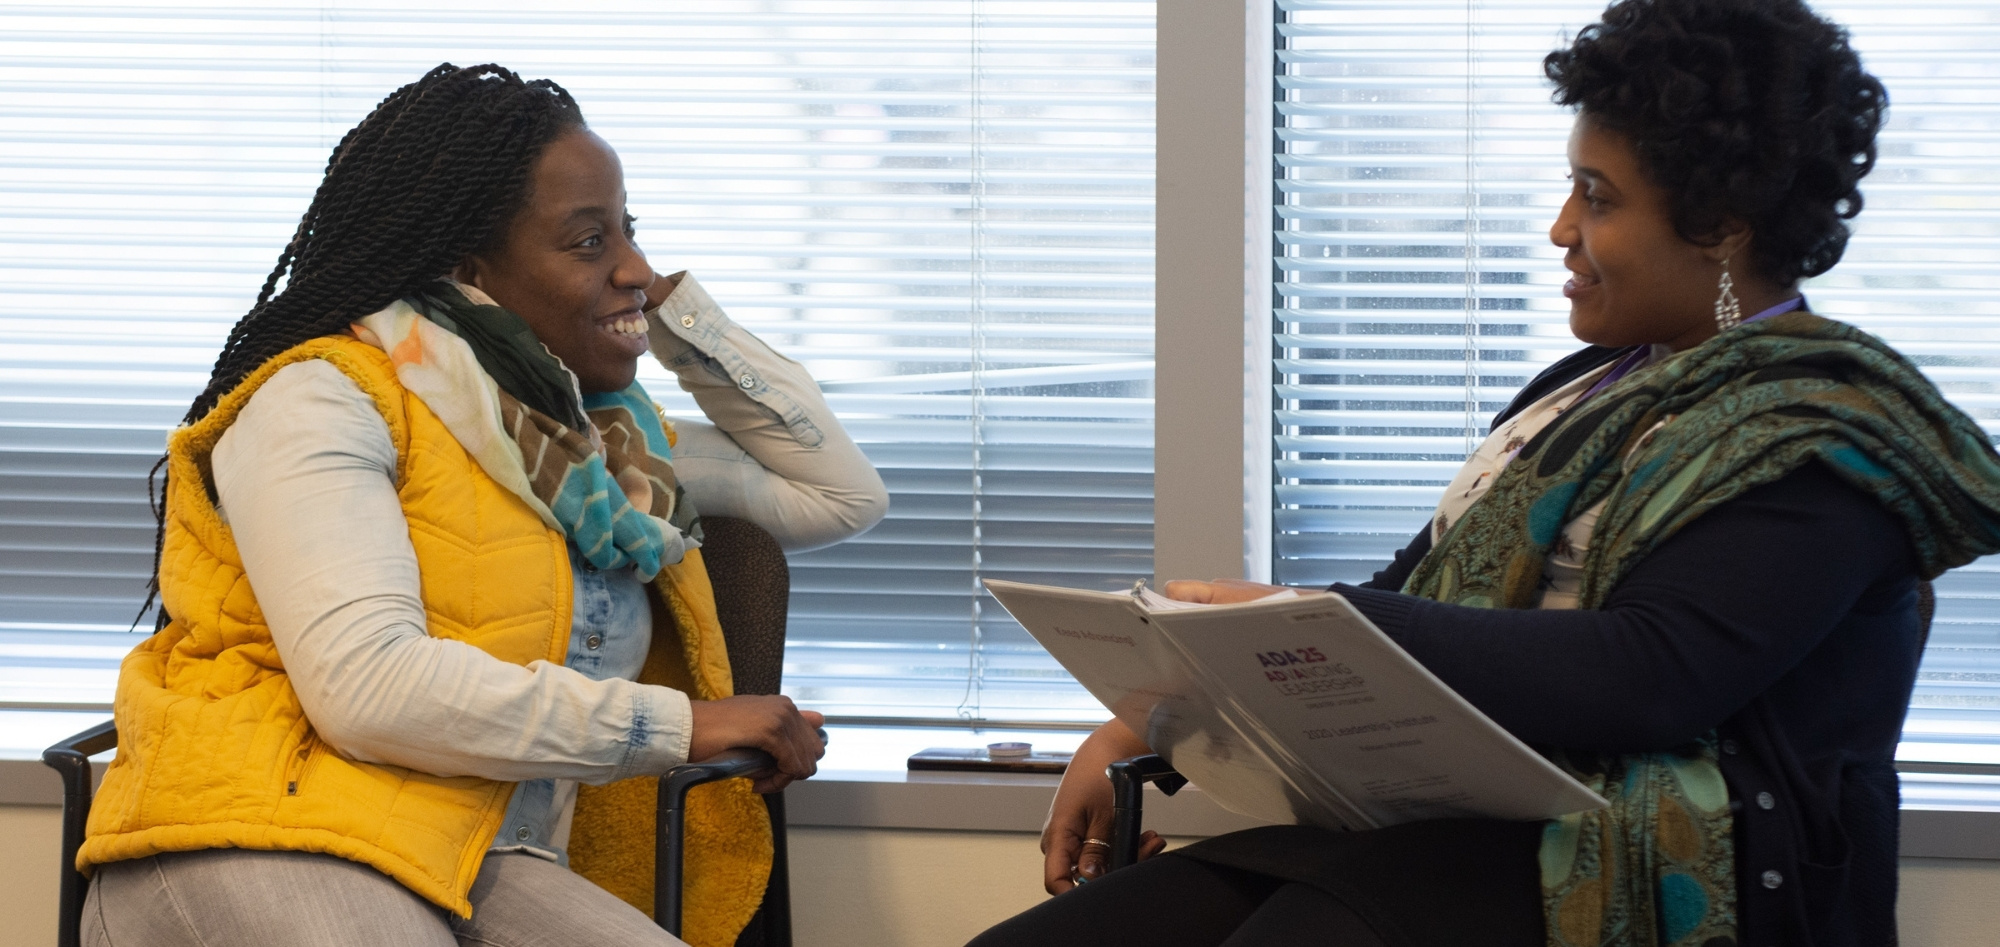 Two women sit by a window smiling at each other. One has long black braids, dark-toned skin, and a yellow puffy vest. The other has curly dark brown hair, dark-toned skin, and dangly diamond earrings.